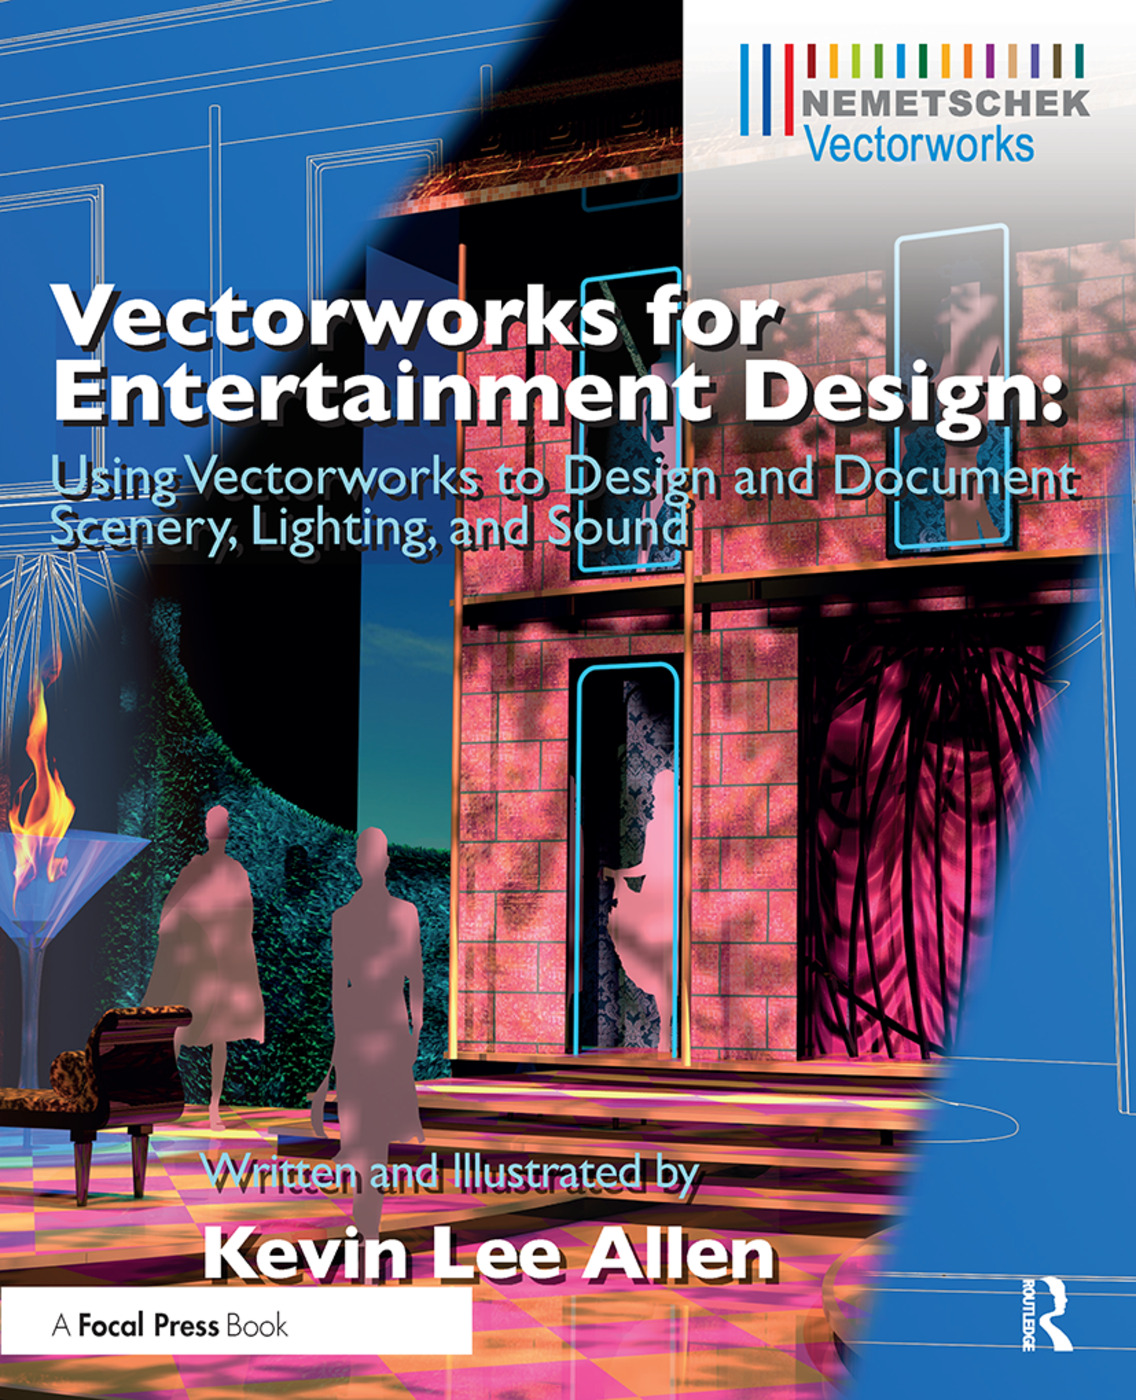 Vectorworks for Entertainment Design: Using Vectorworks to Design and Document Scenery, Lighting, and Sound book cover